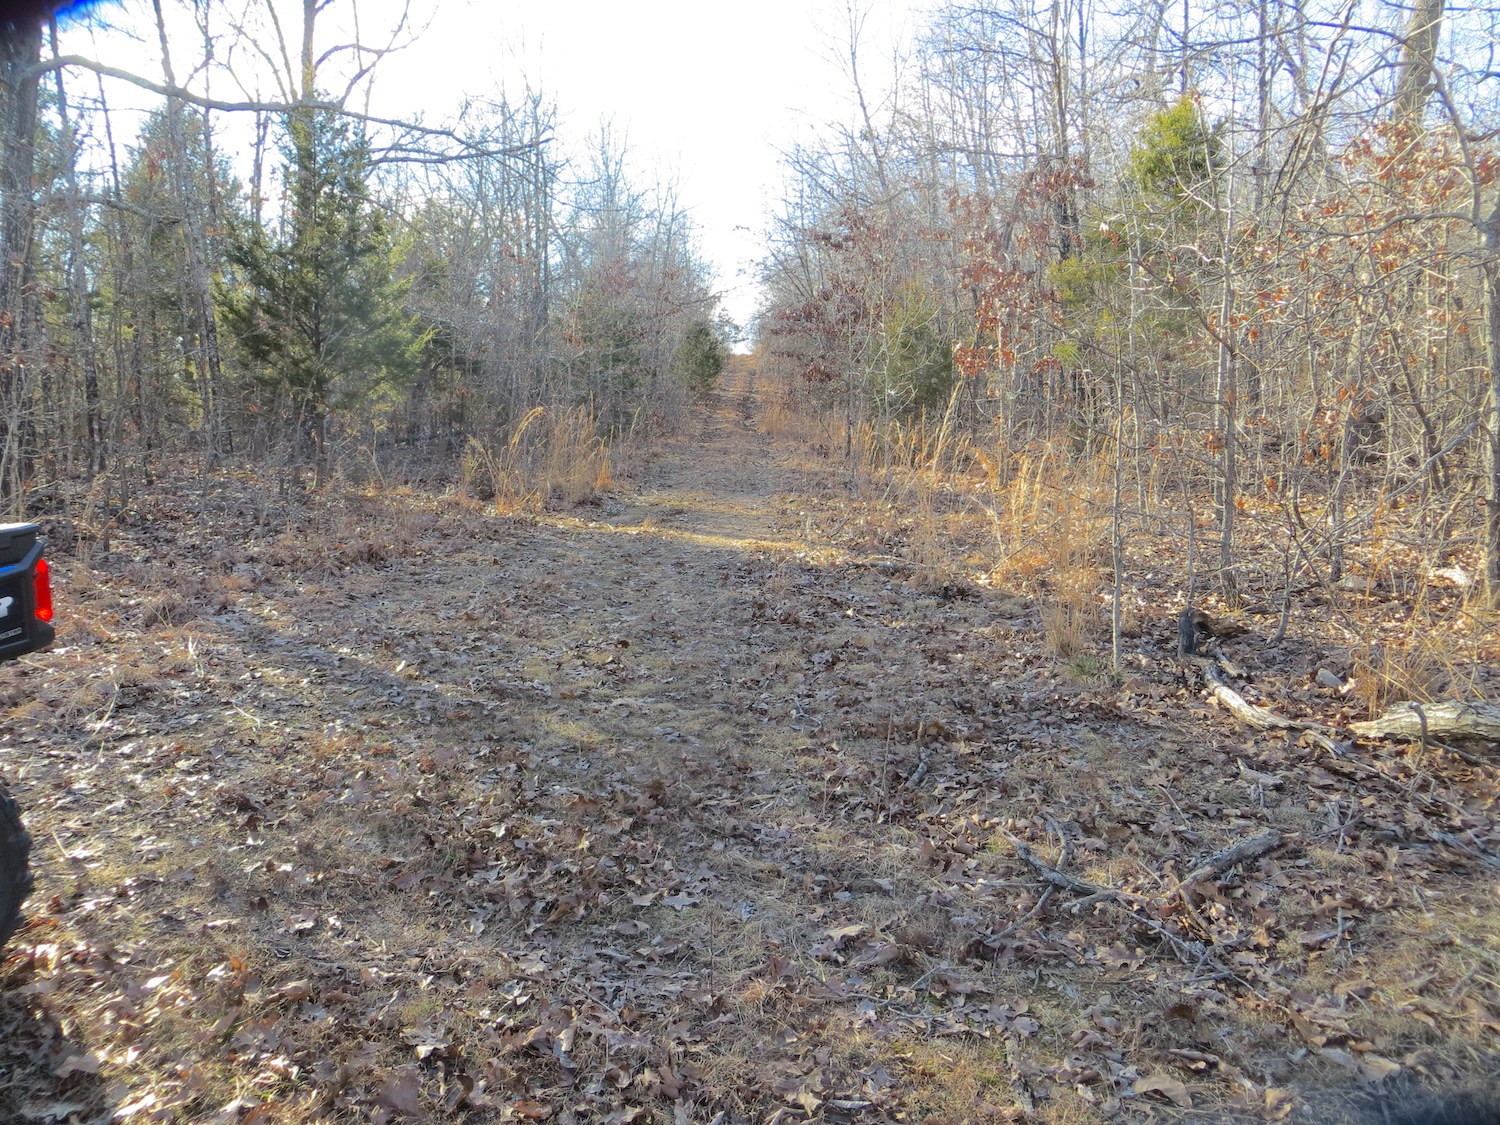 Recreational Land for Sale in Mammoth Spring, AR